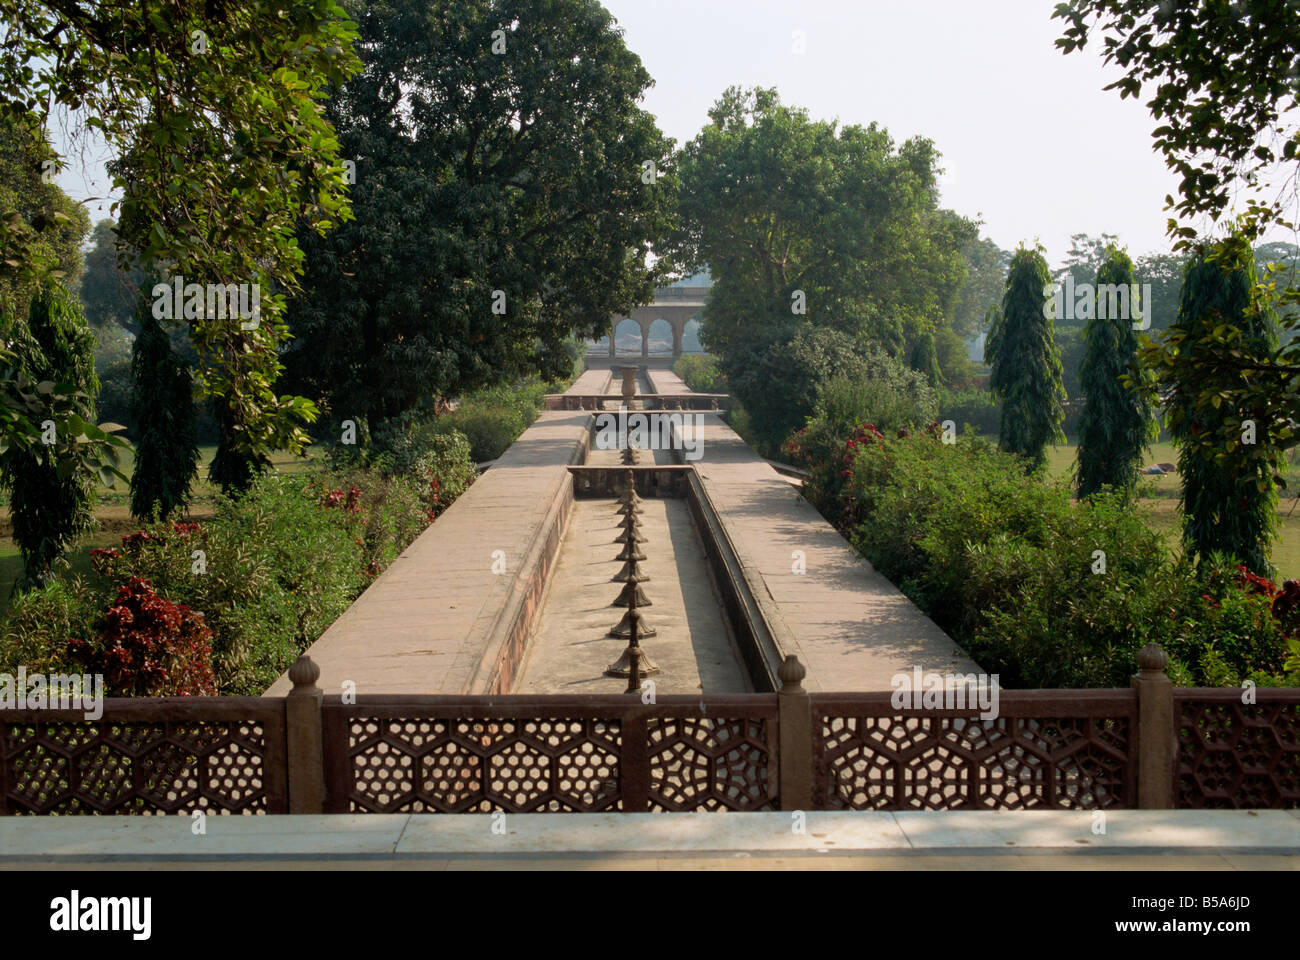 Summer Palace built in 1768 AD with over 2000 fountains Deeg Rajasthan state India Asia - Stock Image